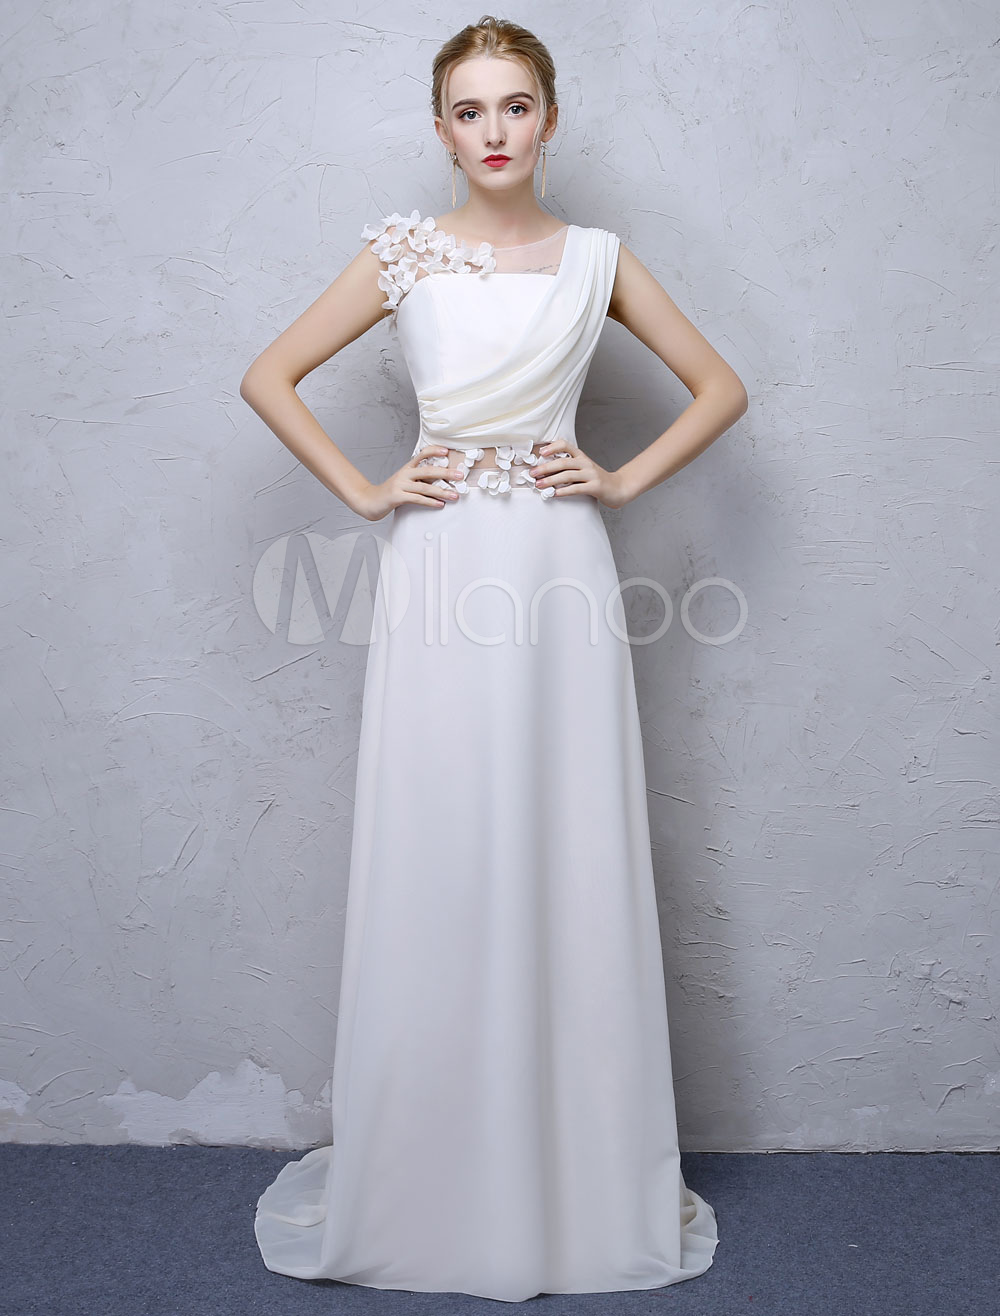 White Evening Dresses Flowers Applique Illusion Chiffon Sleeveless Formal Gowns With Train (Wedding Cheap Party Dress) photo